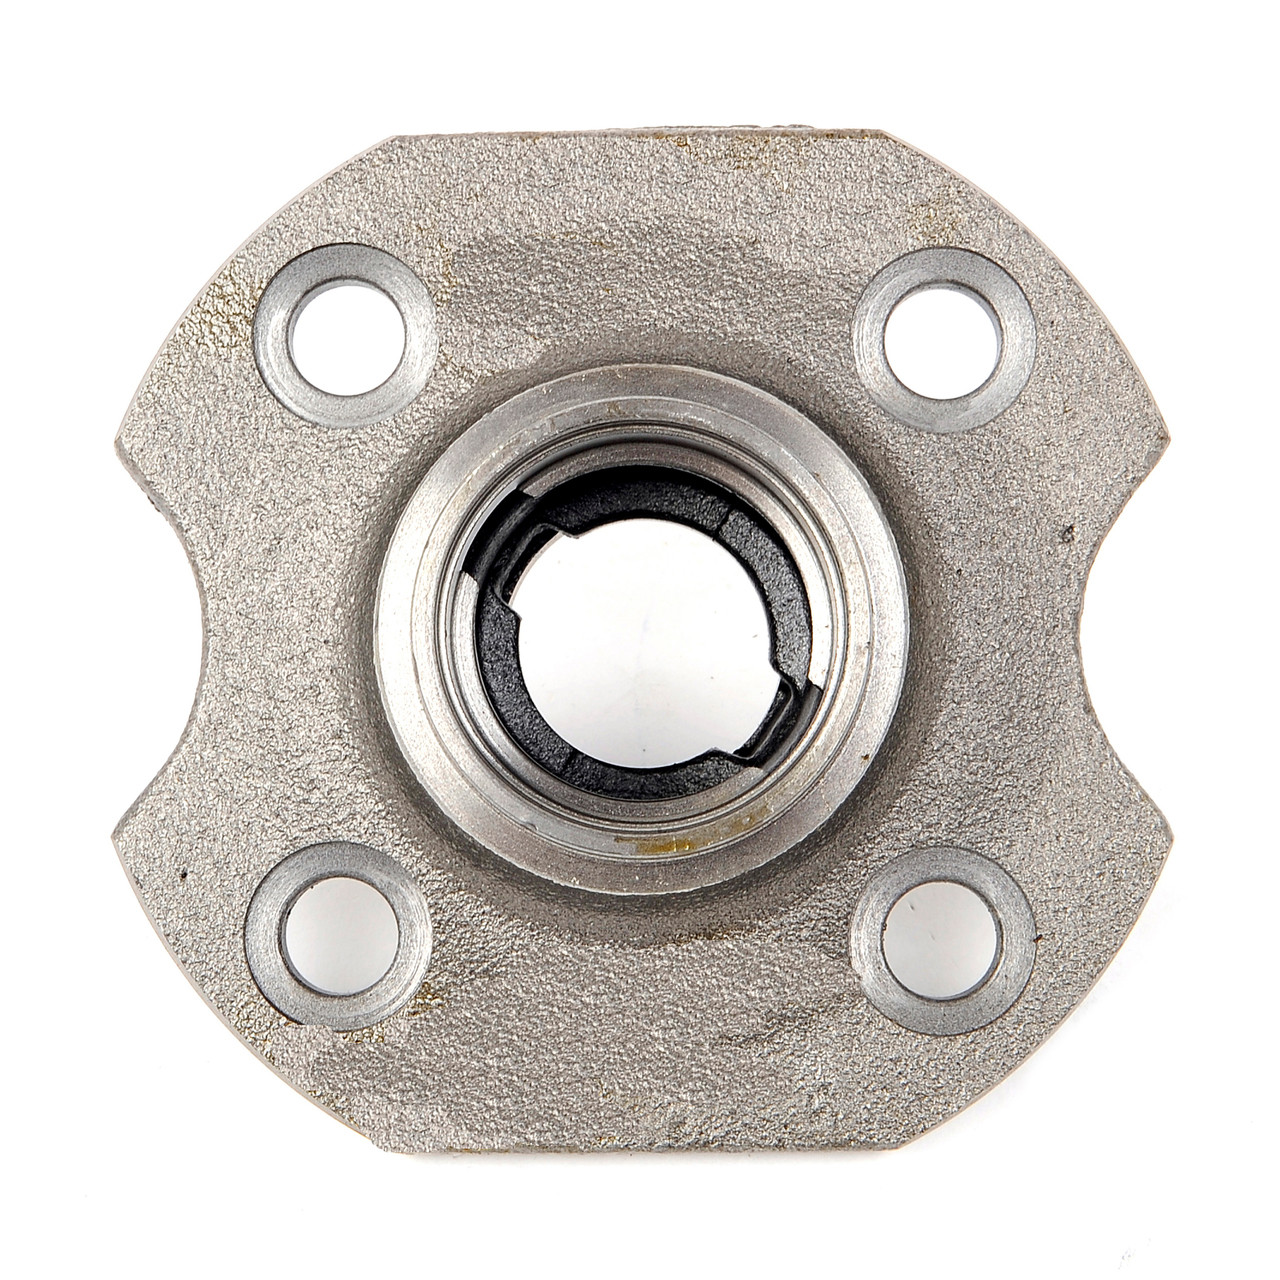 "Wheel Hub 4 Stud 6 Cylinder For 9"" Brakes [FM-EH005]"